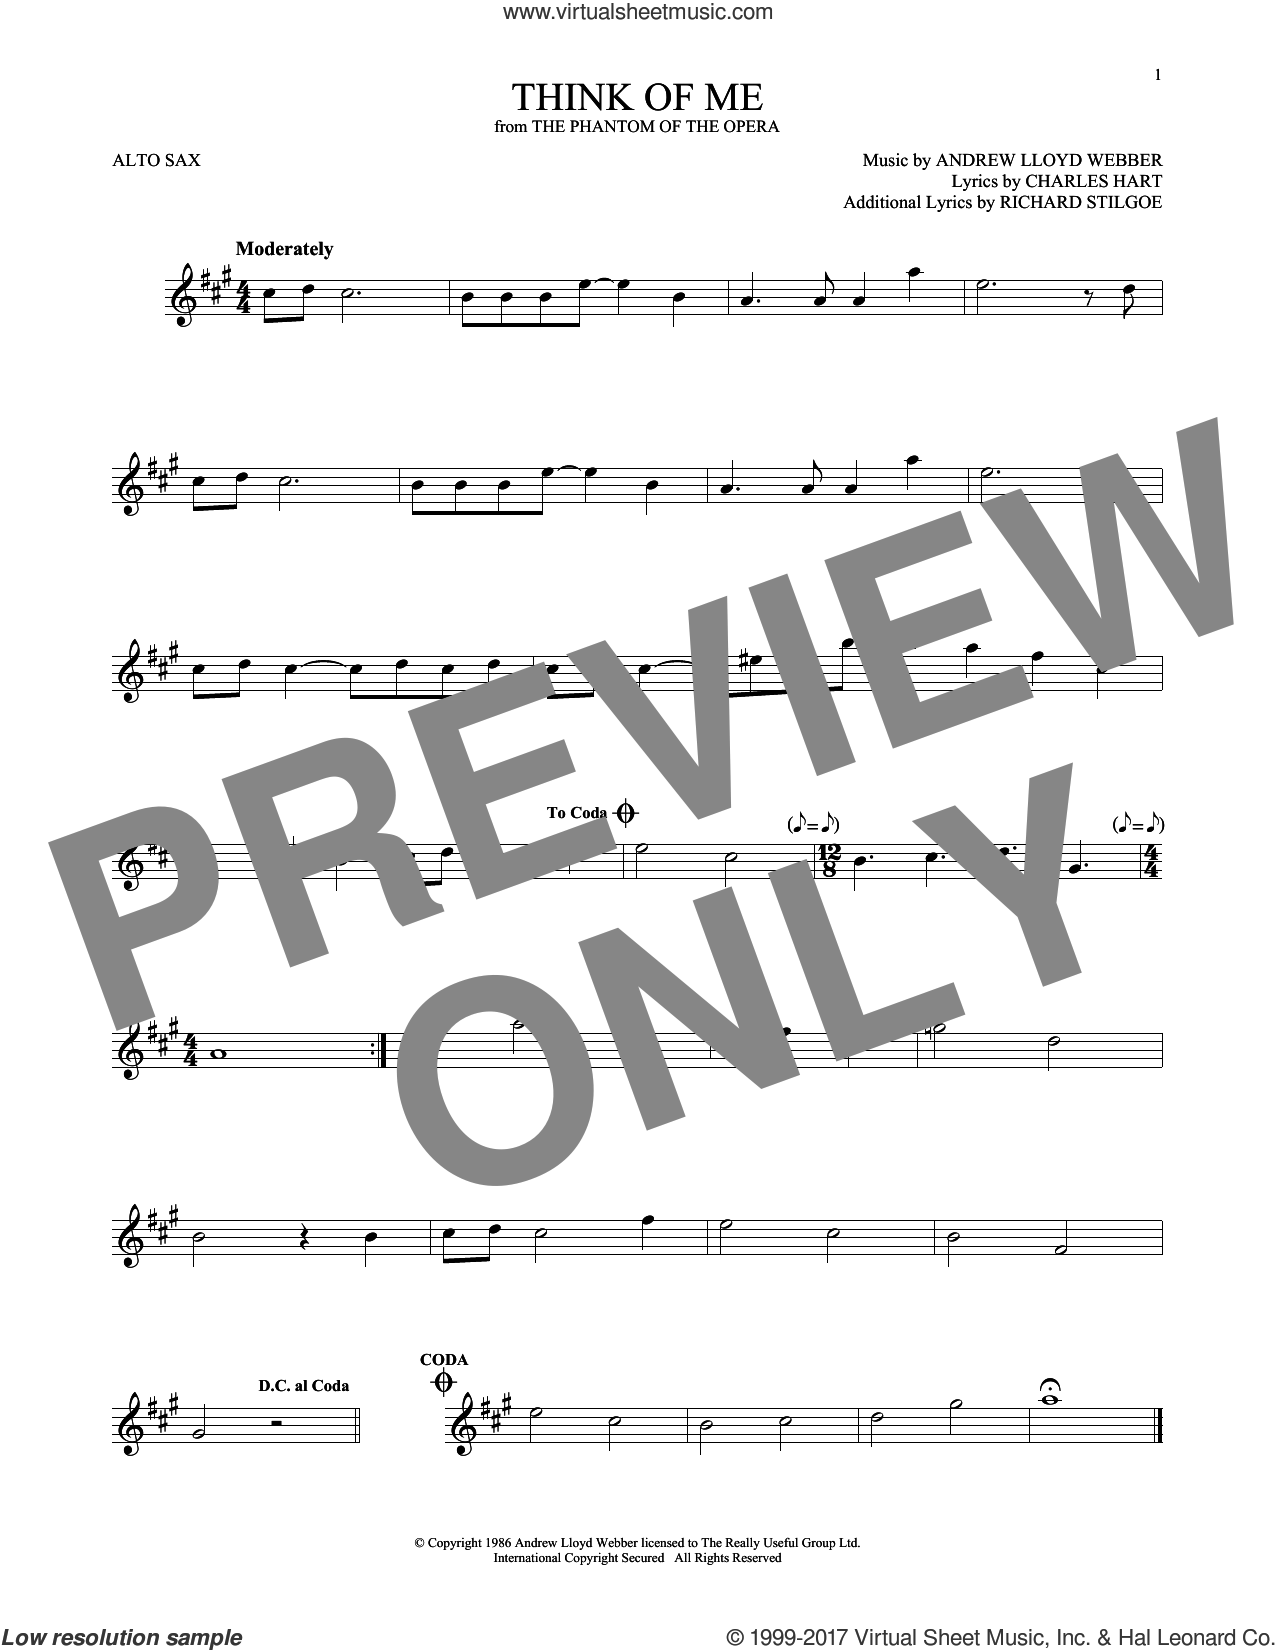 Think Of Me (from The Phantom Of The Opera) sheet music for alto saxophone solo by Andrew Lloyd Webber, Charles Hart and Richard Stilgoe, intermediate skill level